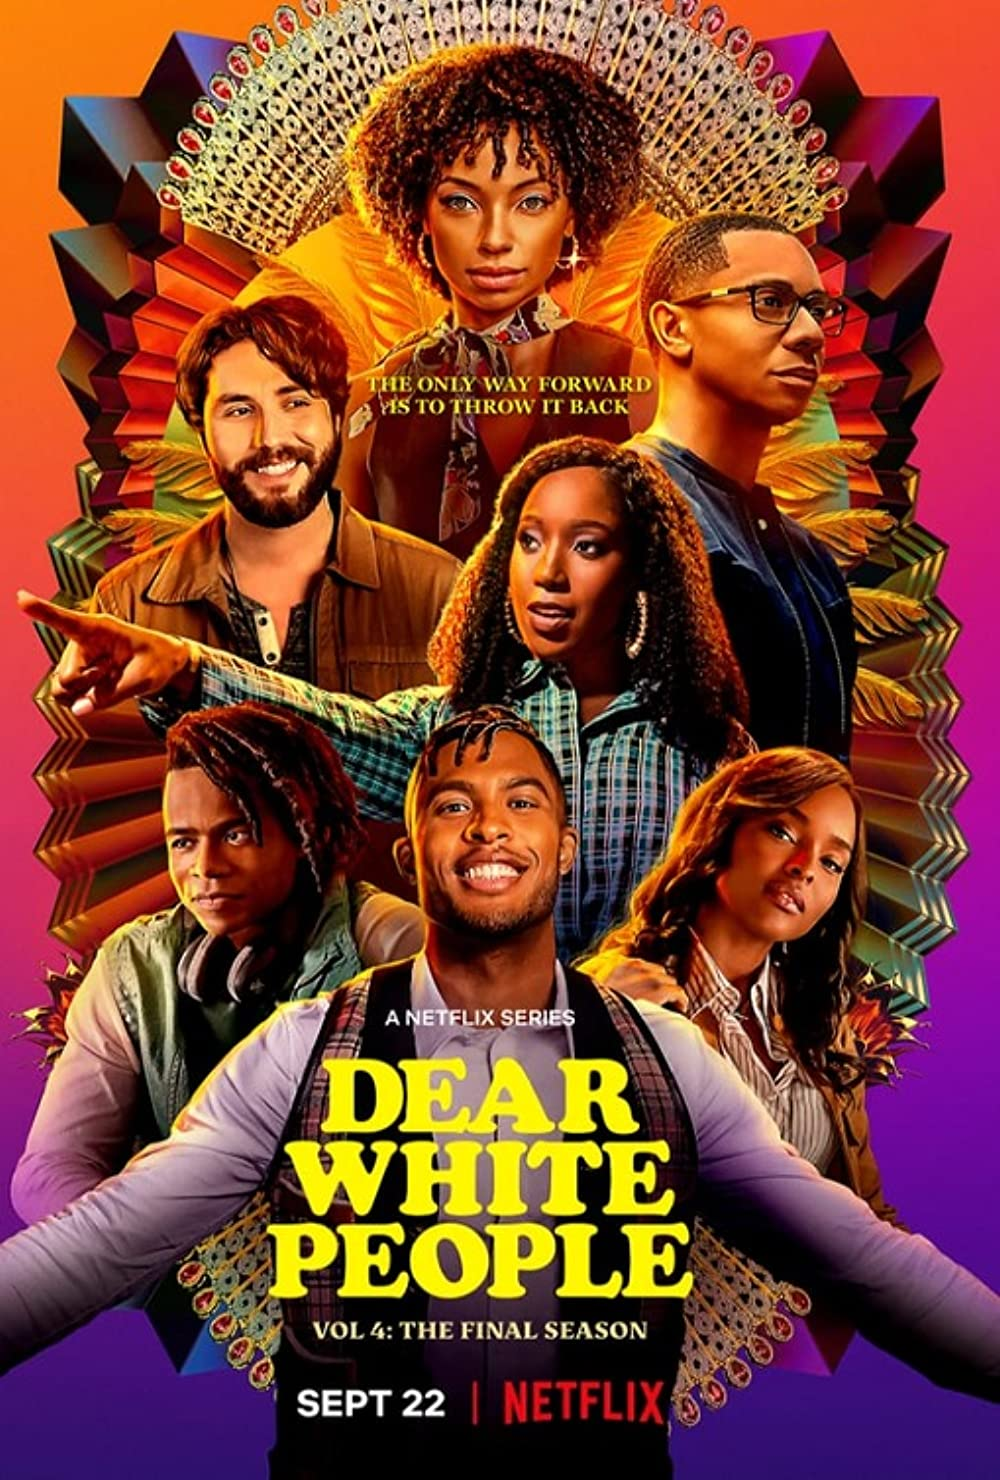 How Many Episodes Will Dear White People Season 4 Have?